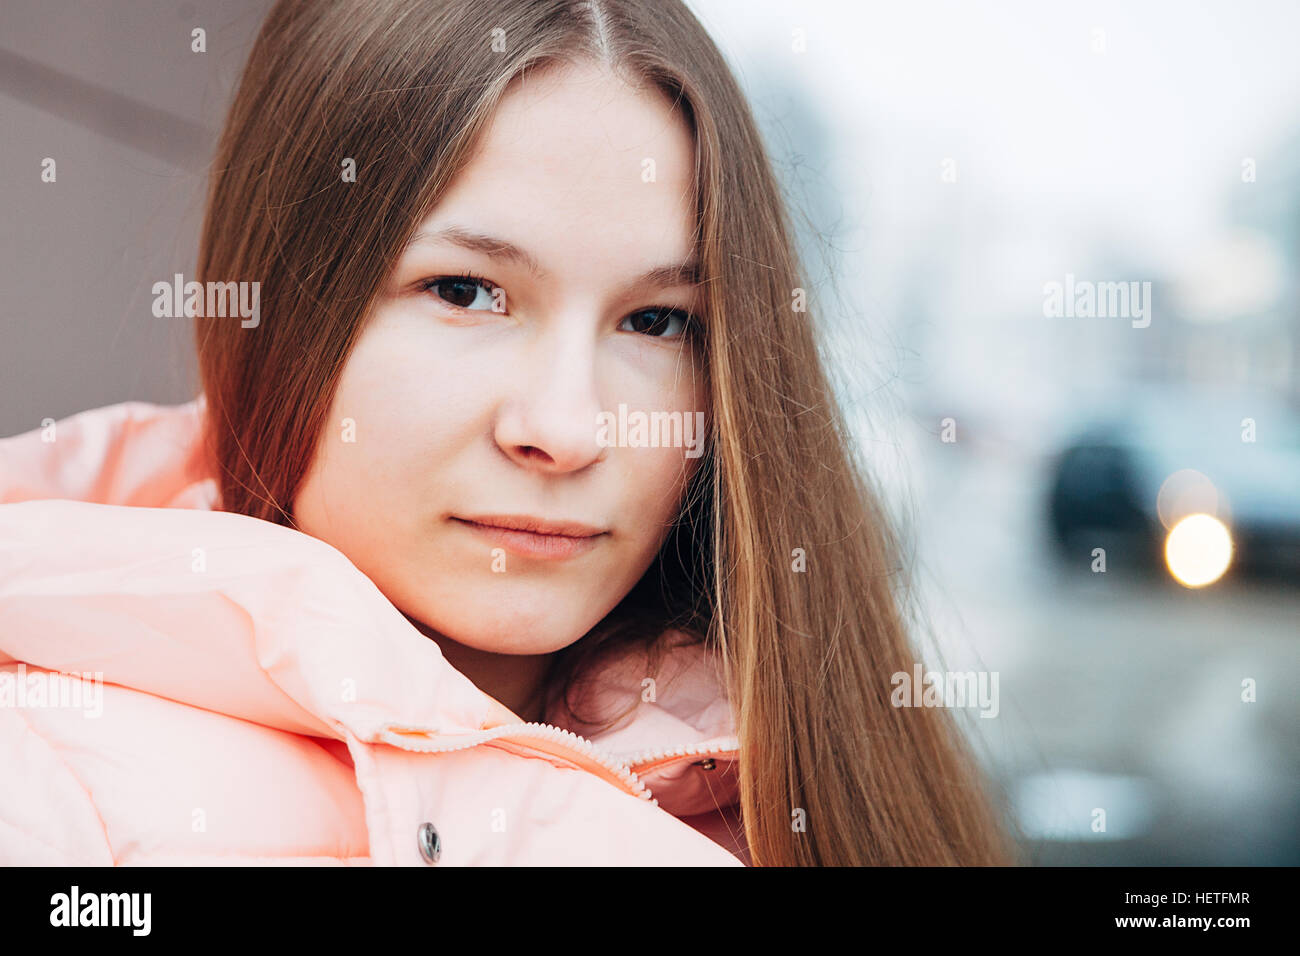 Young woman outdoor portrait horizontal - Stock Image